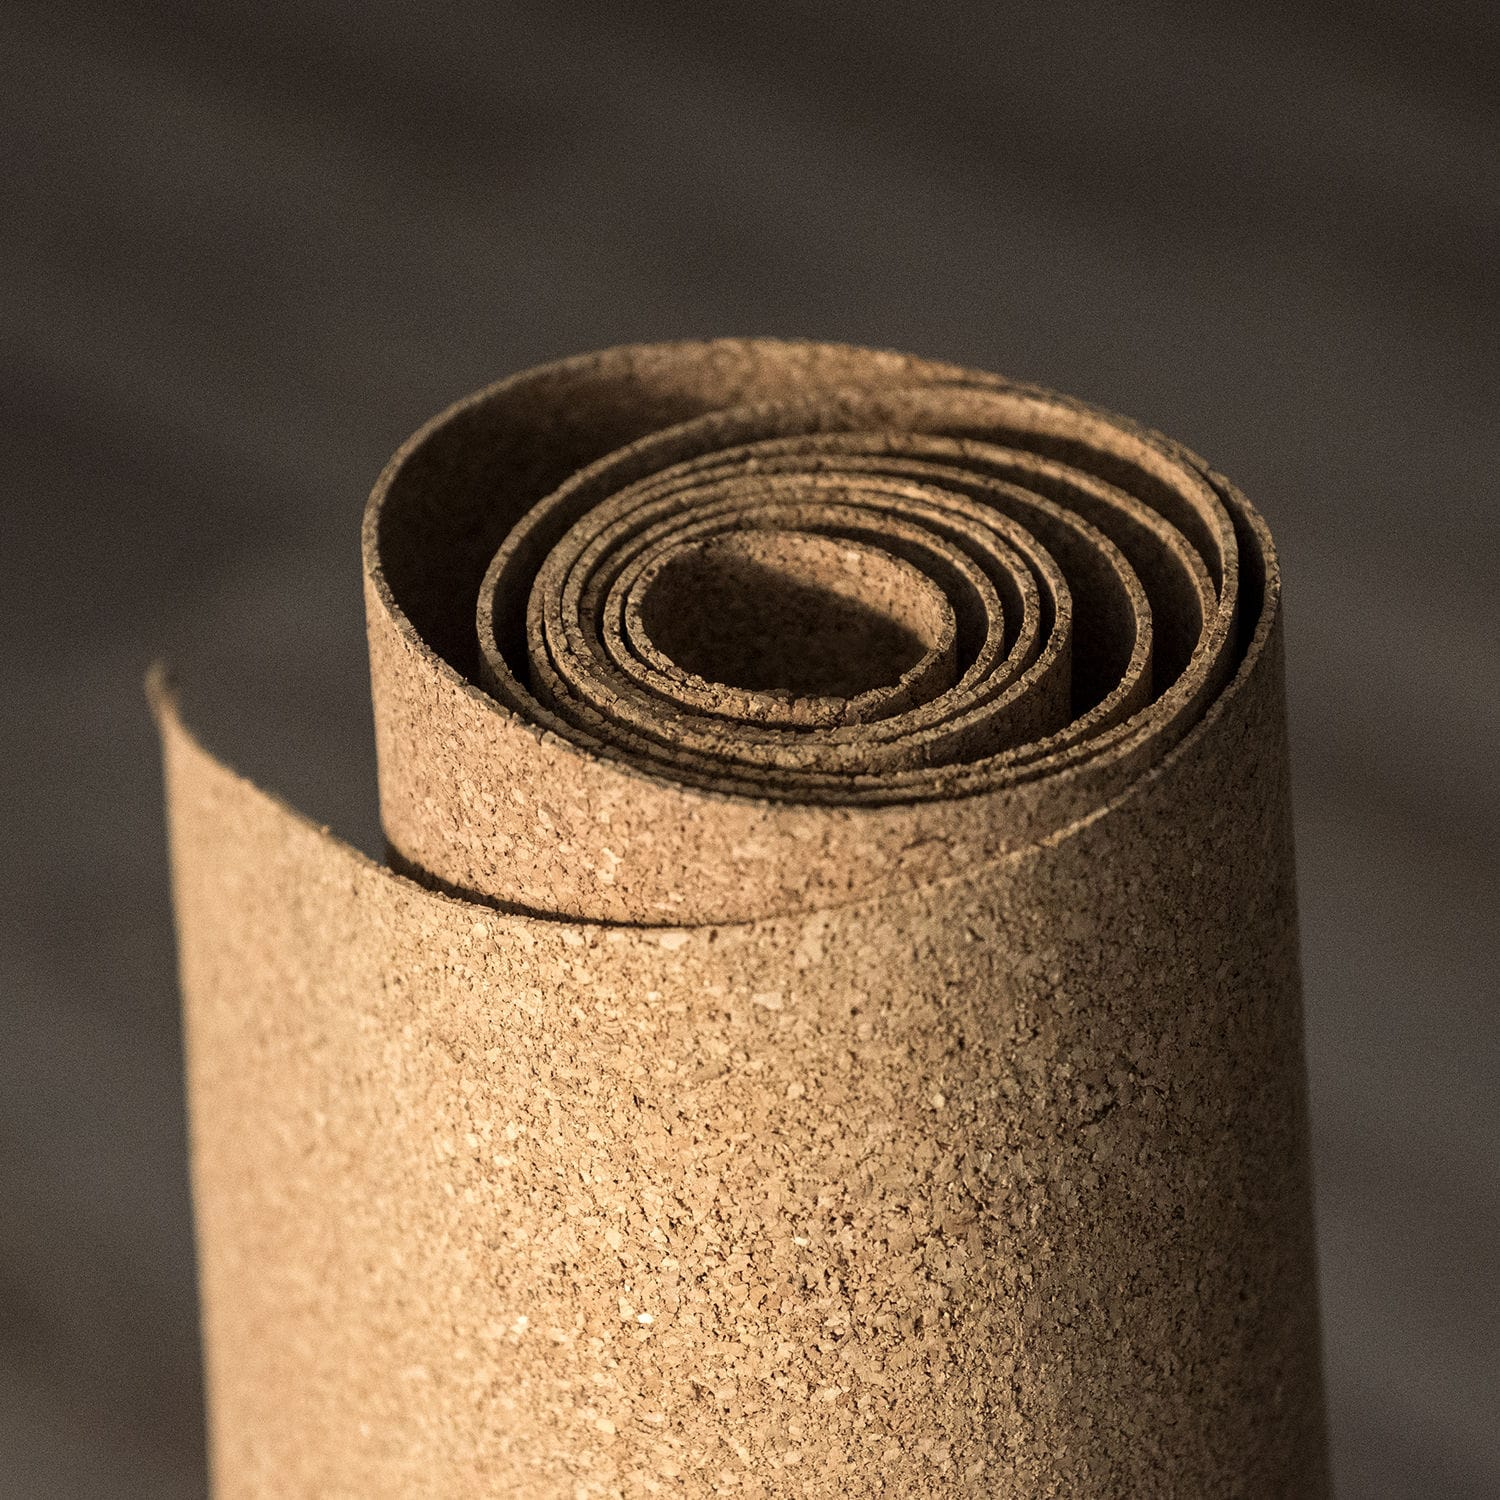 Roll Resilient Underlay Cork Wood Flooring Insulated